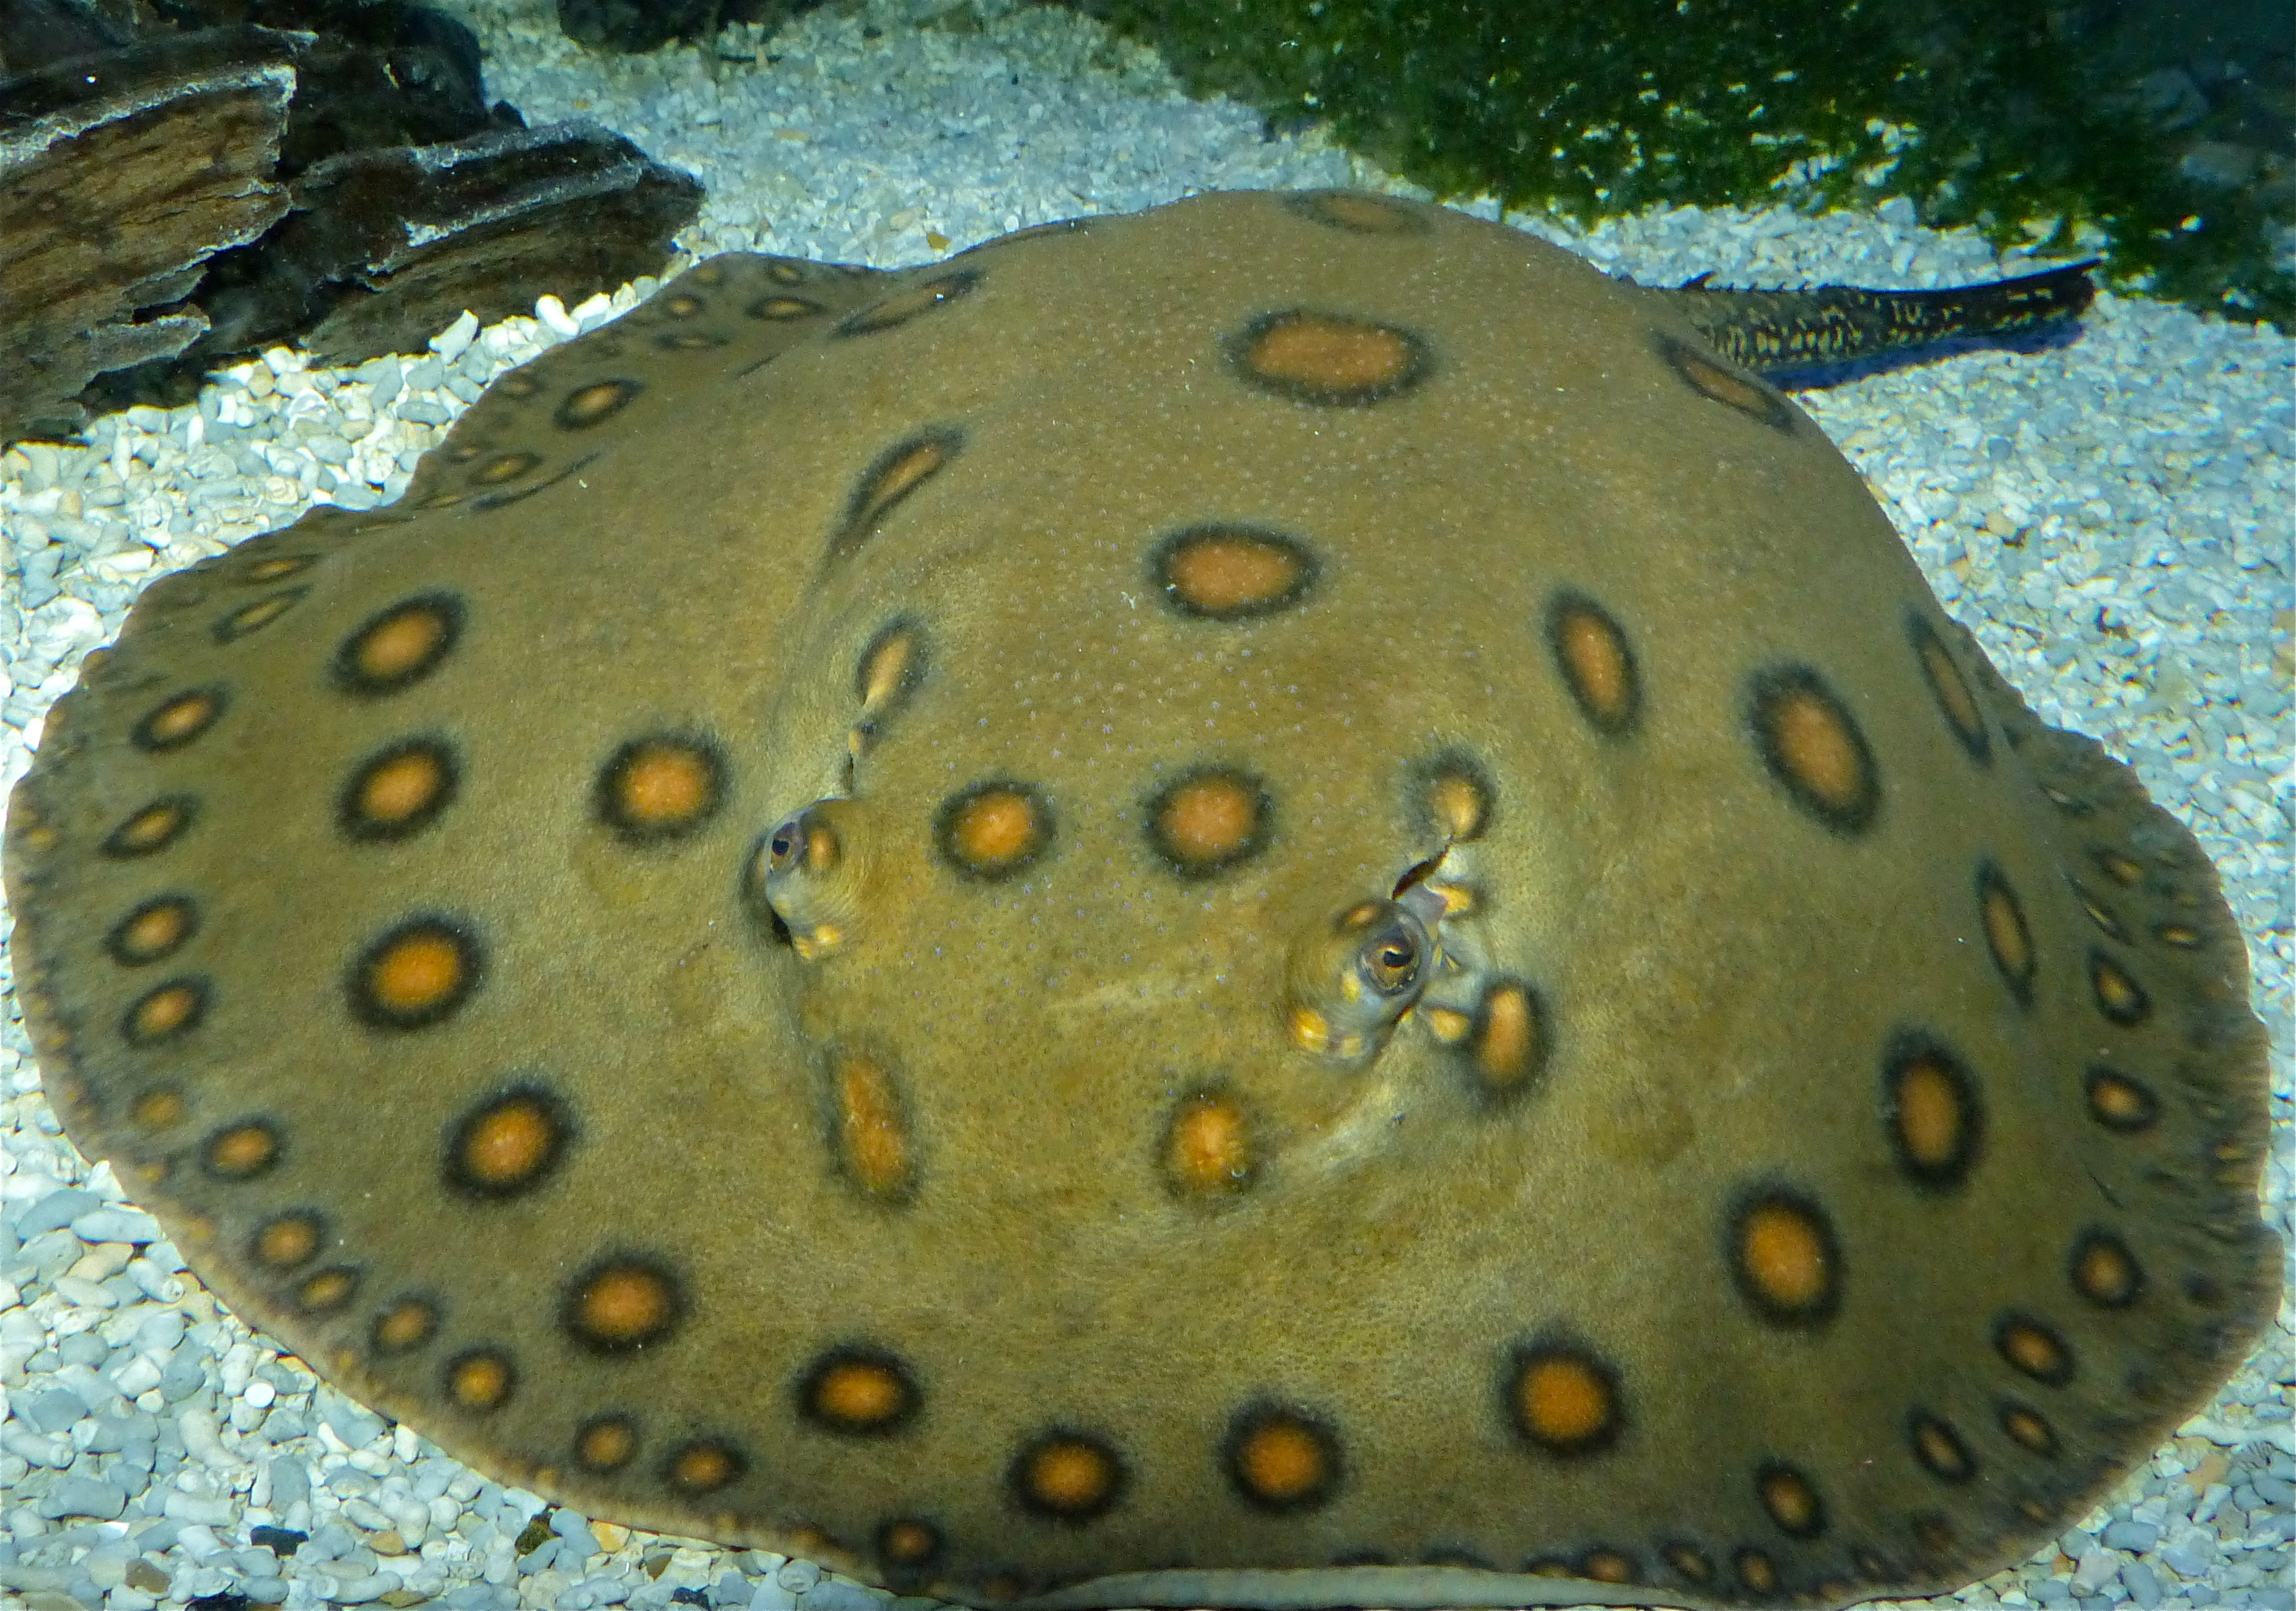 Image of Ocellate River Stingray